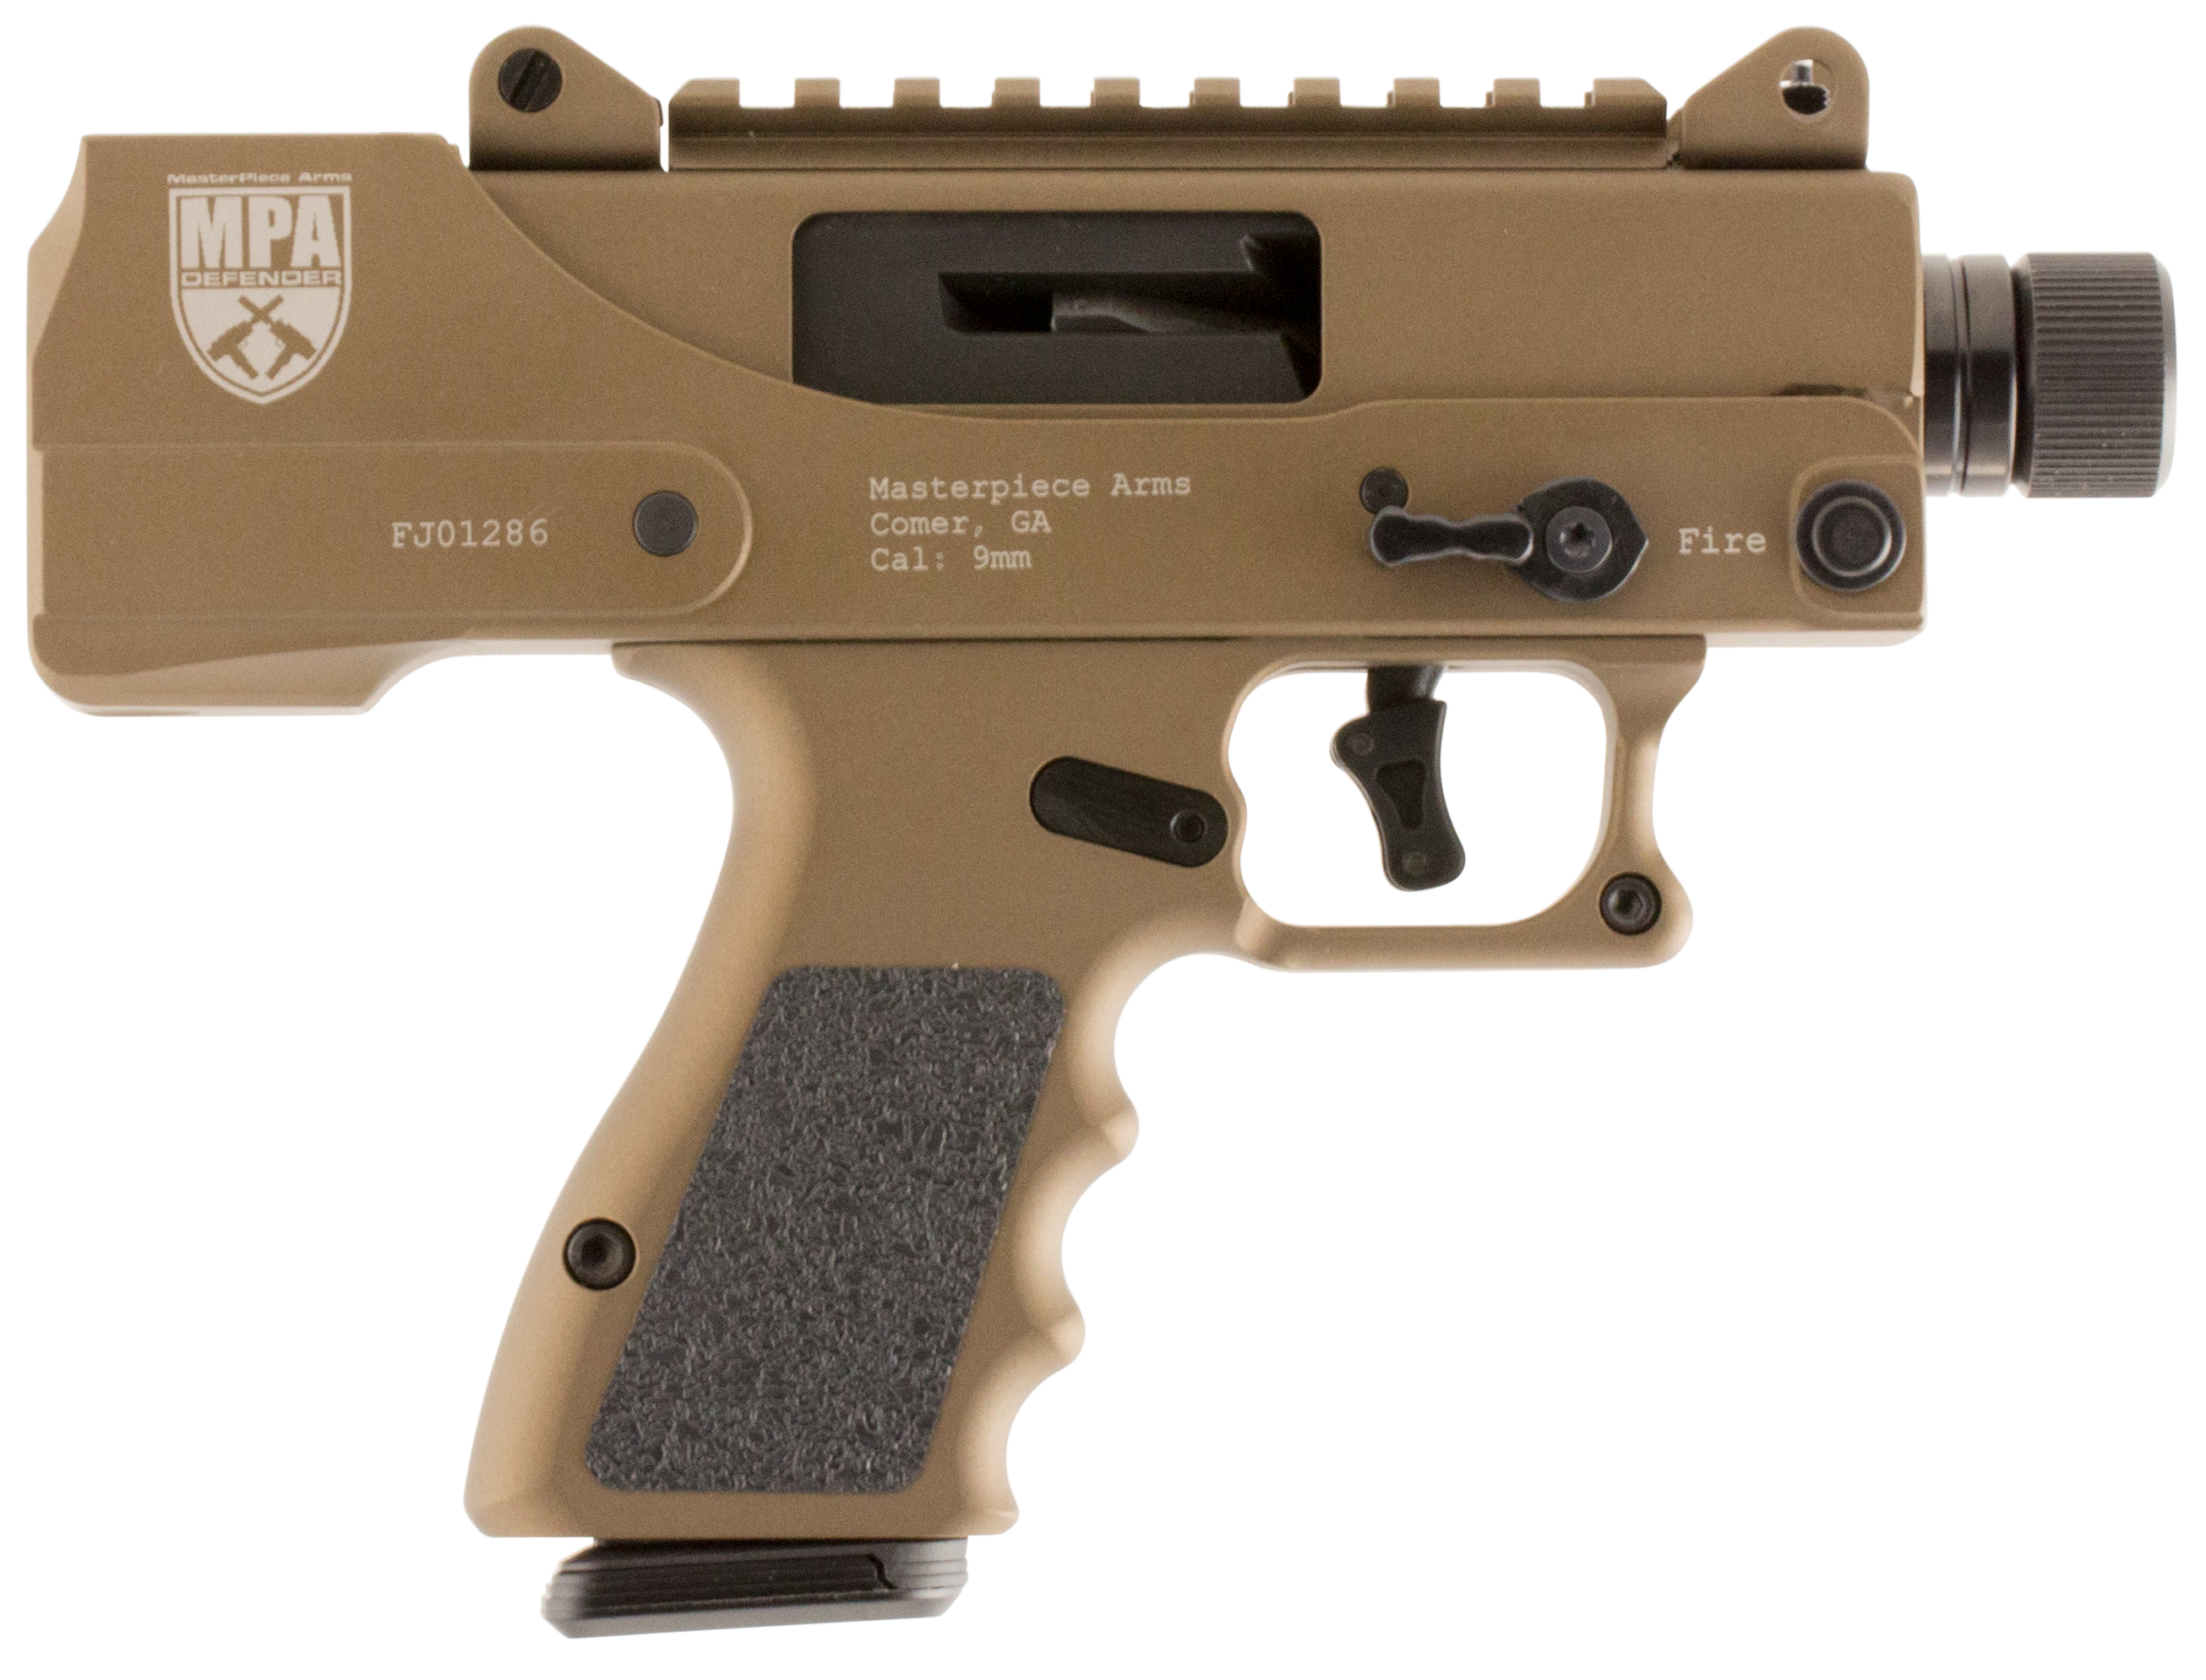 MasterPiece Arms 930DMG Defender 9mm Side Cocking TB Pistol Semi-Automatic 9mm 3.5